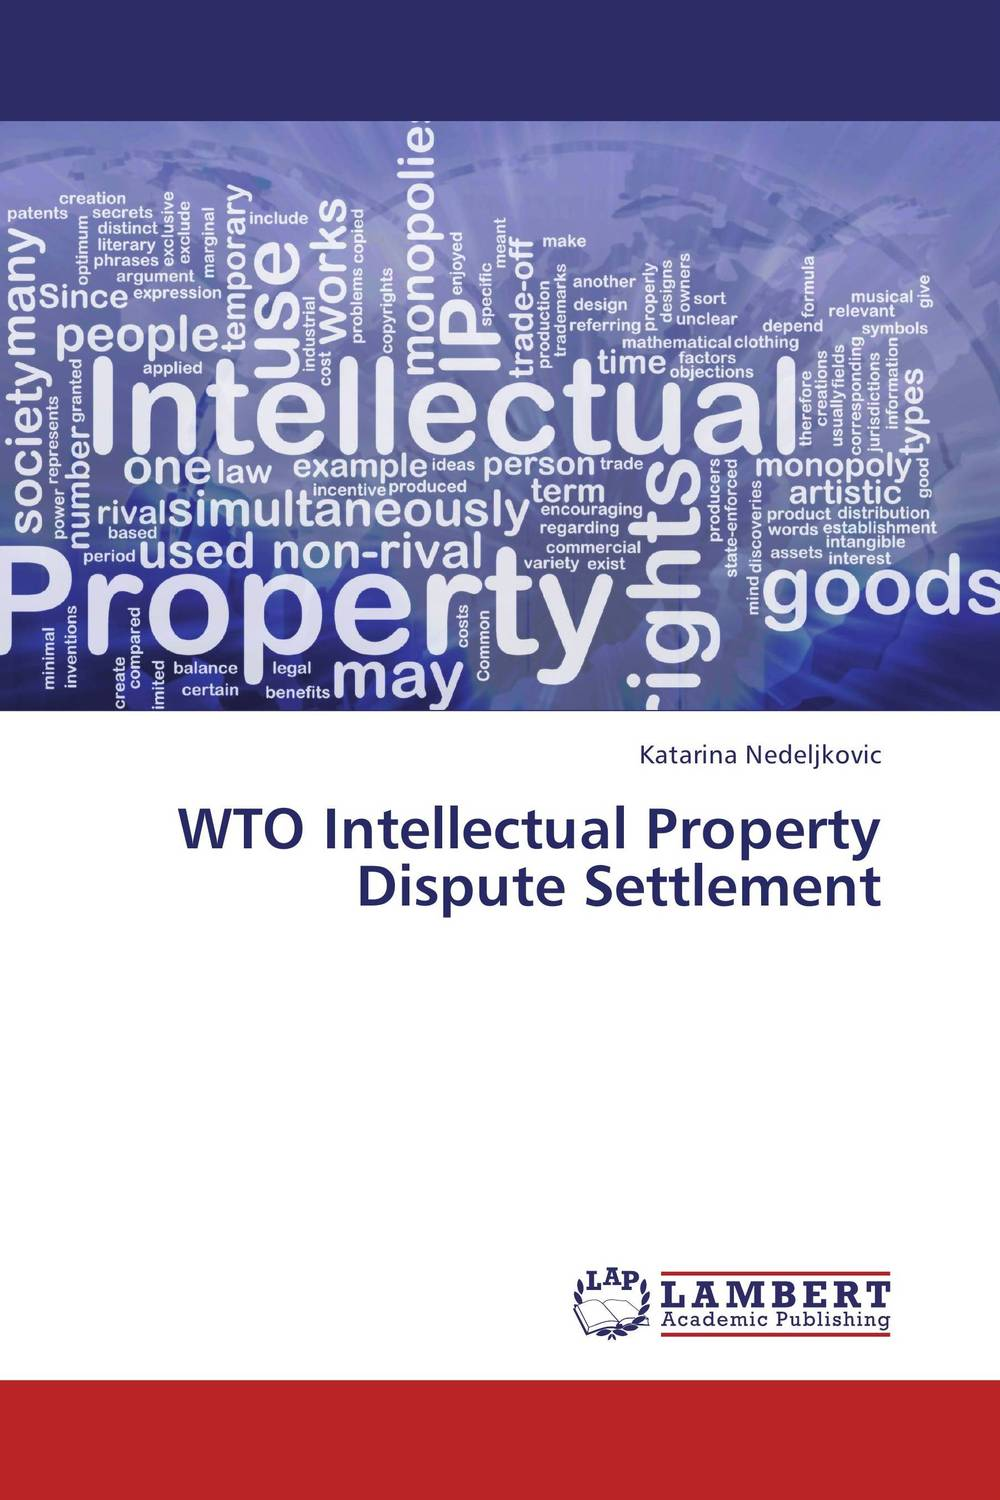 WTO Intellectual Property Dispute Settlement